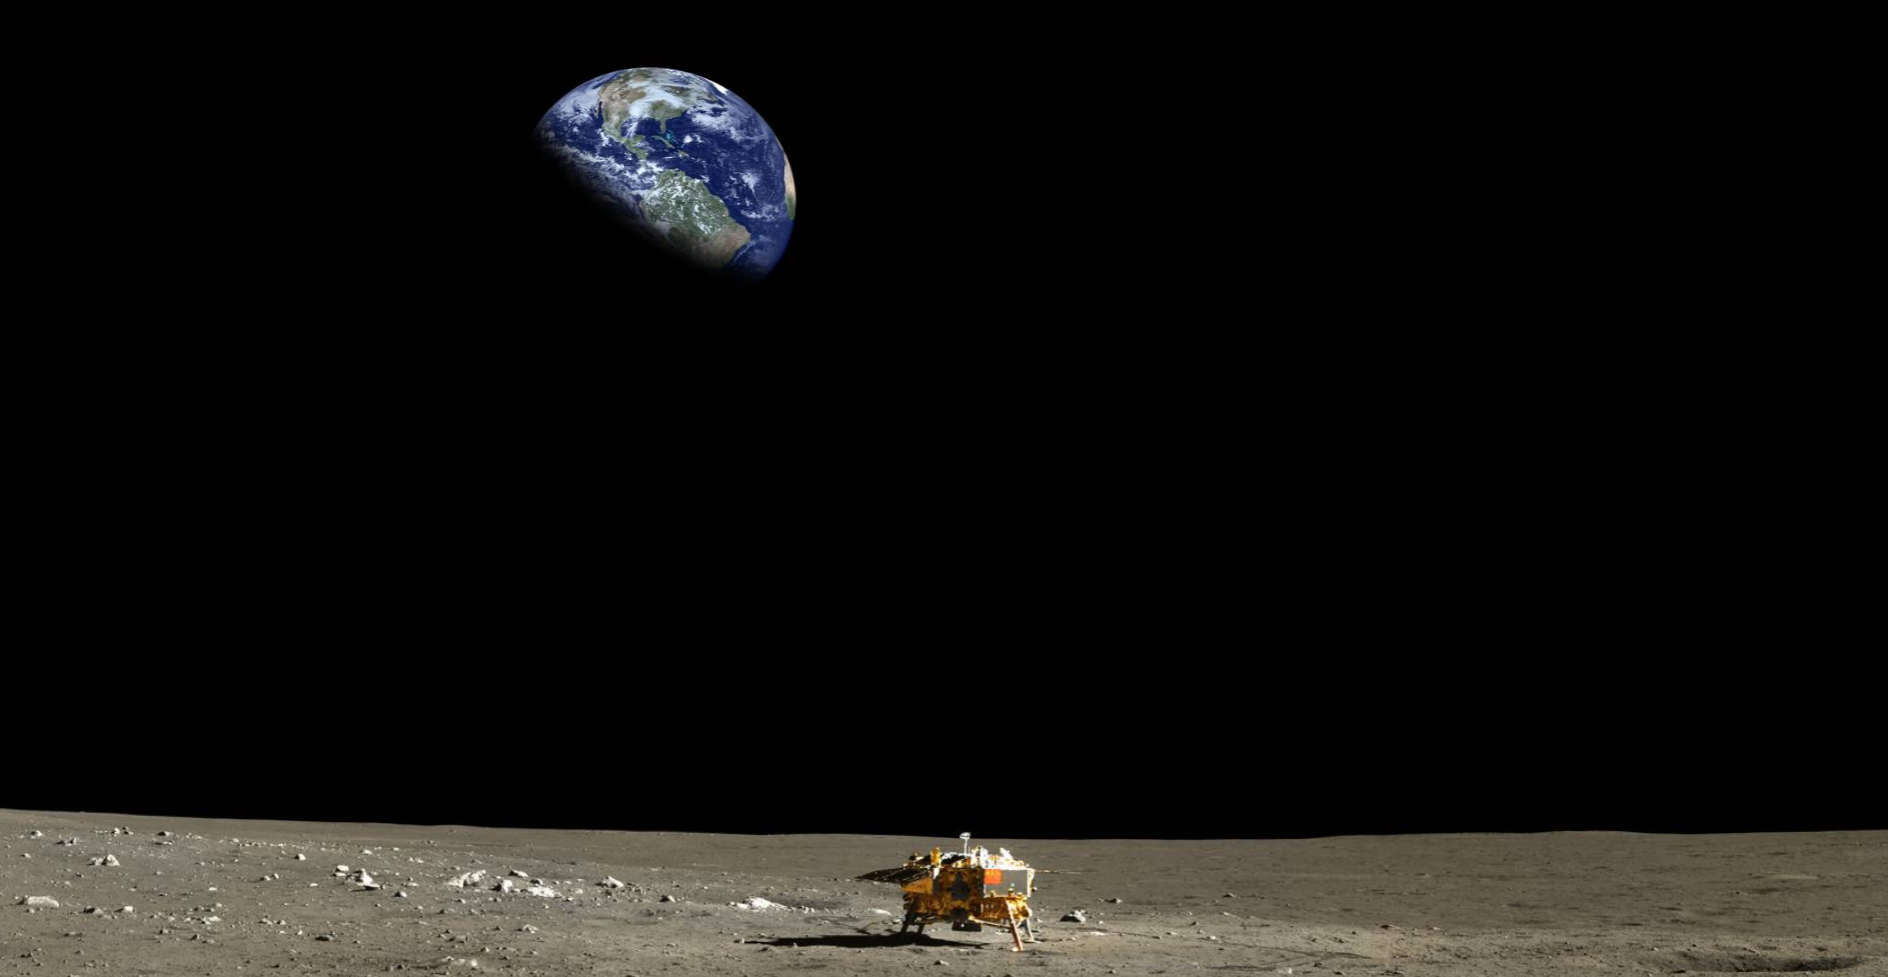 earth from the moon content classconnect